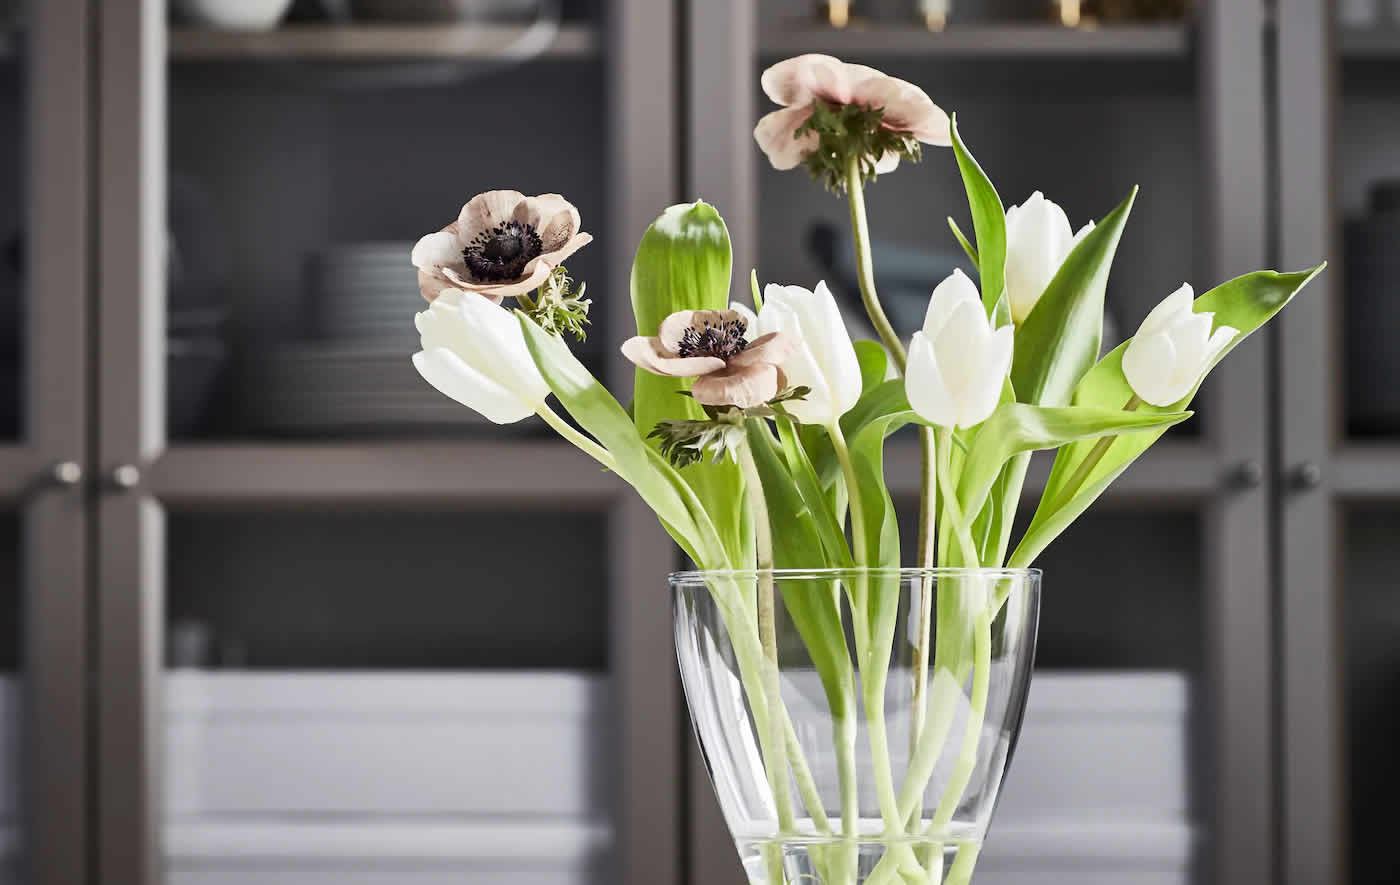 IKEA Ideas - Invite nature's magic into your home